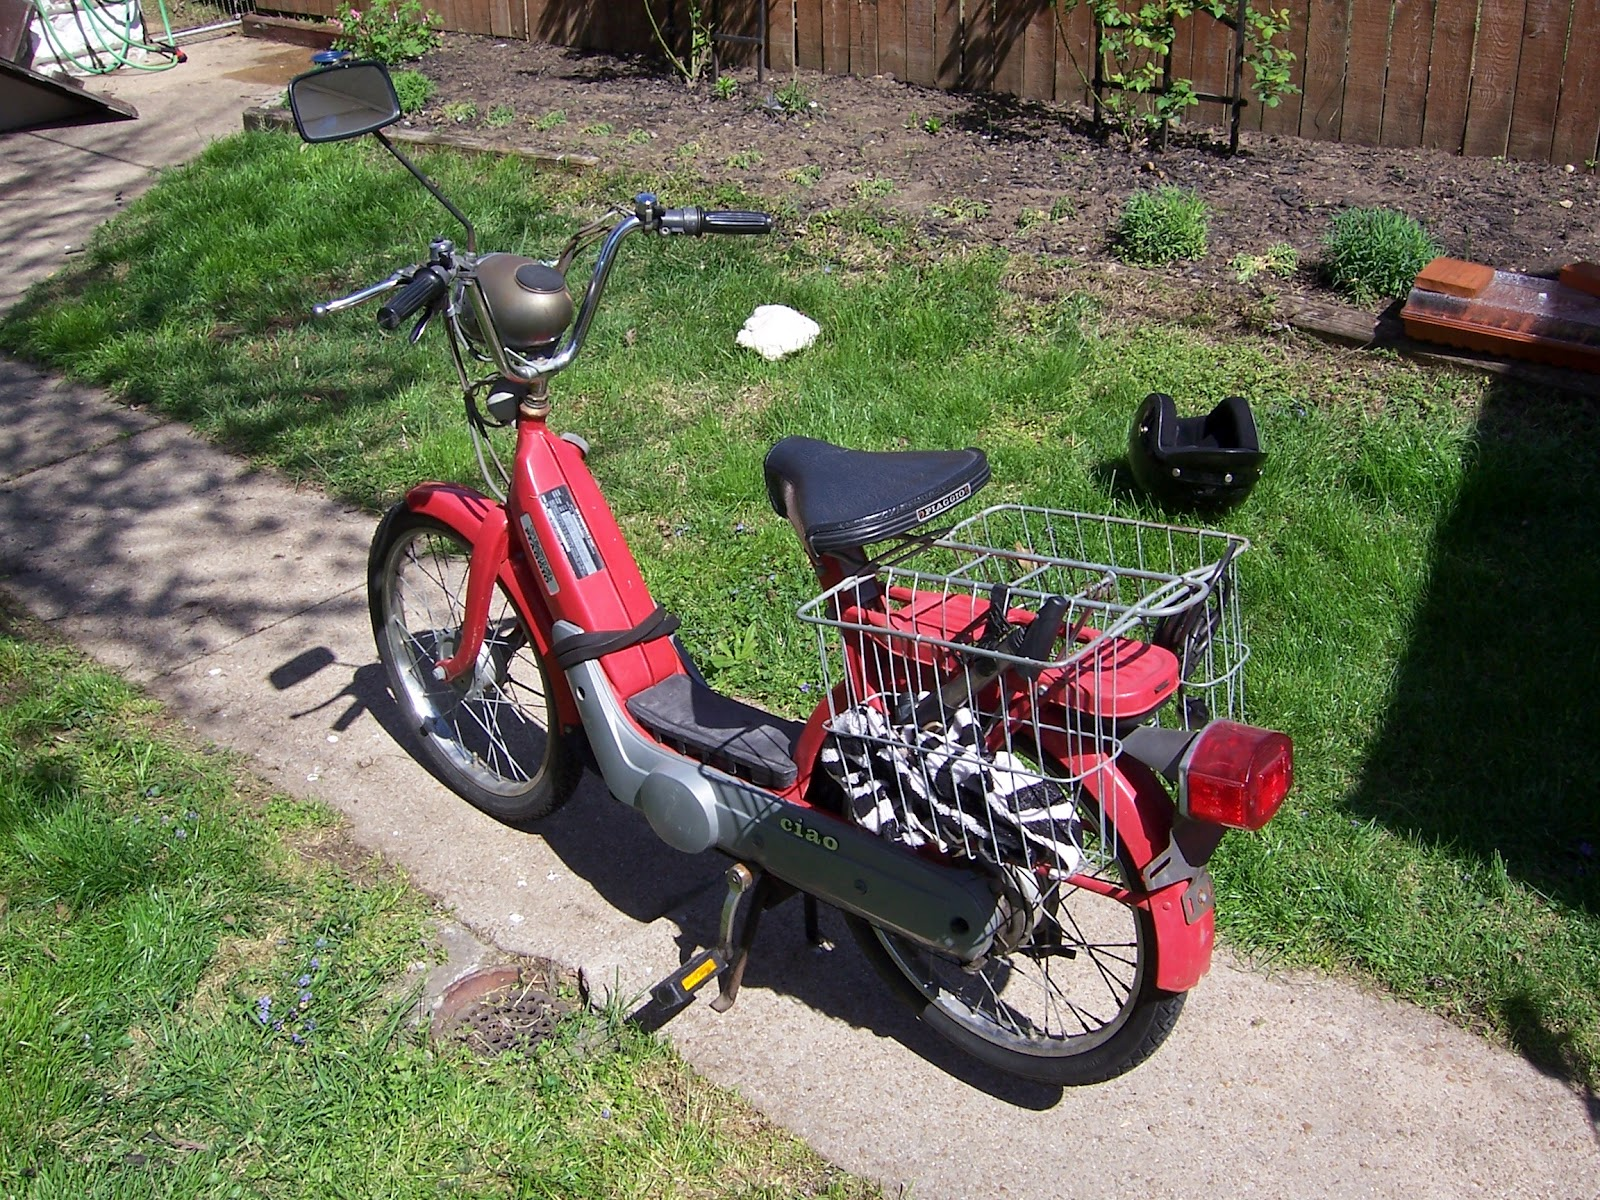 The Man in the Van: 1978 Vespa Ciao NOT For Sale $650 in st louis